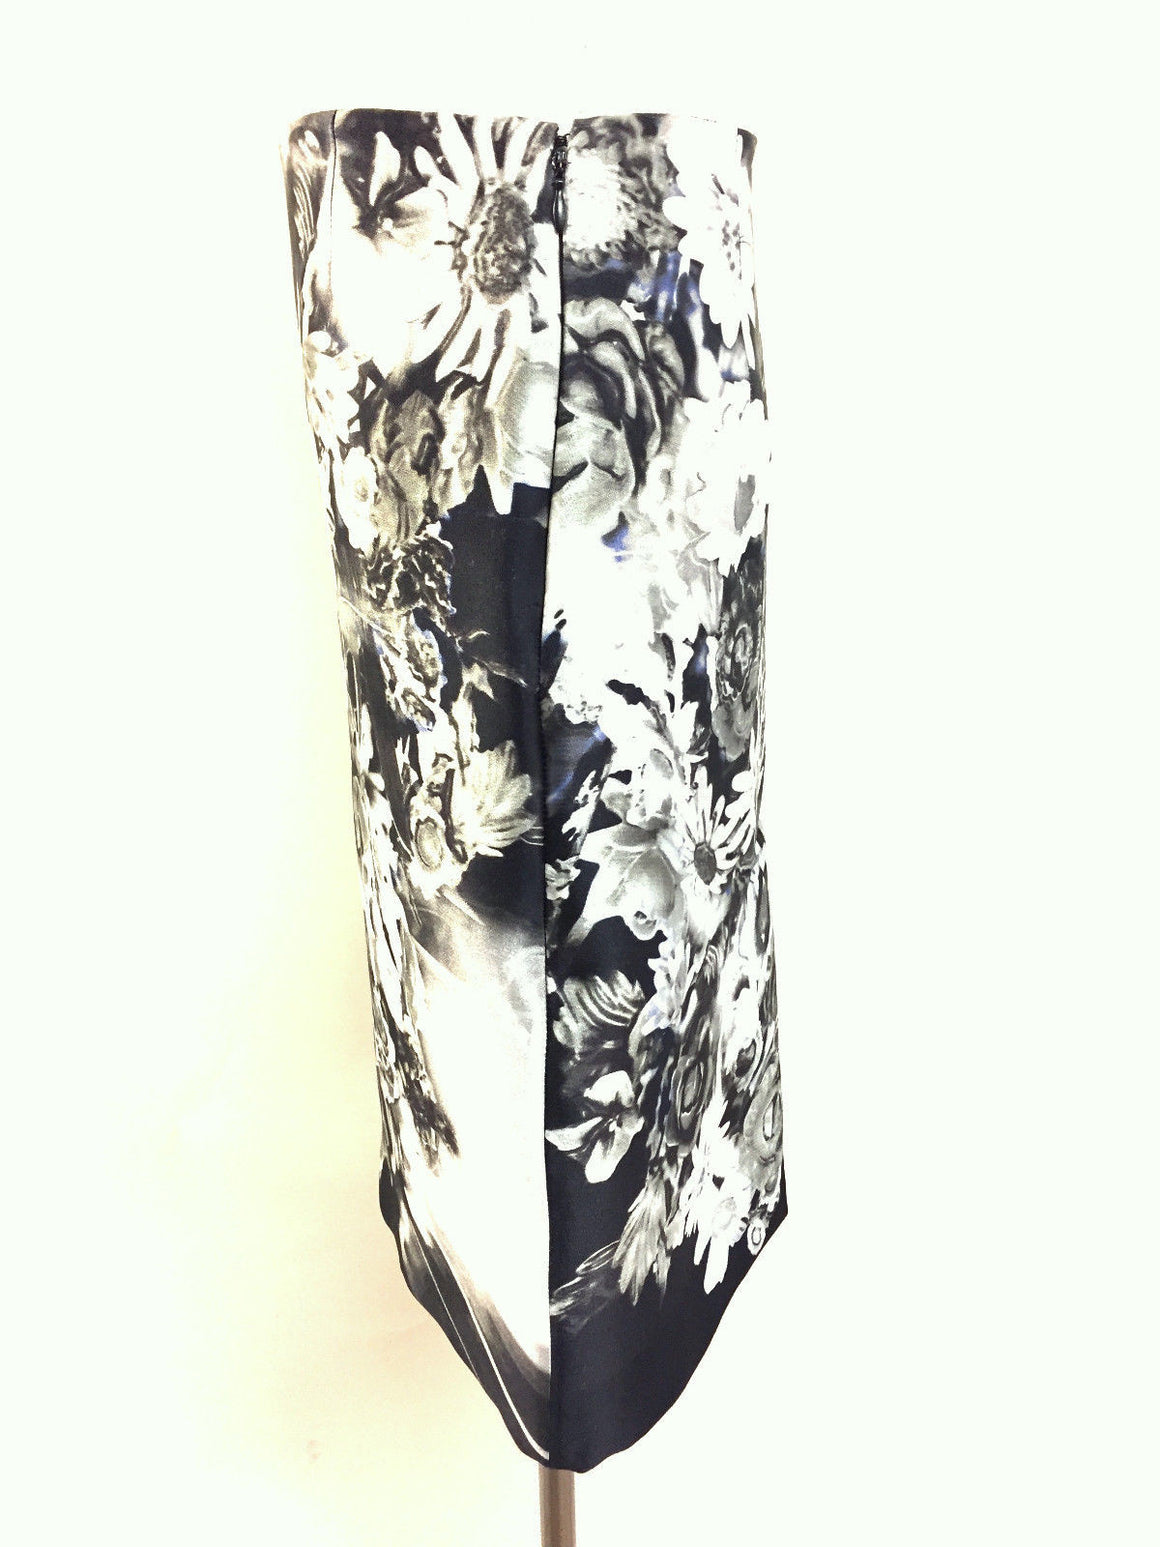 bisbiz.com PRADA Black/Multicolor Floral Print Silk-Blend Pencil Skirt Size: 36 / US 4 - Bis Luxury Resale